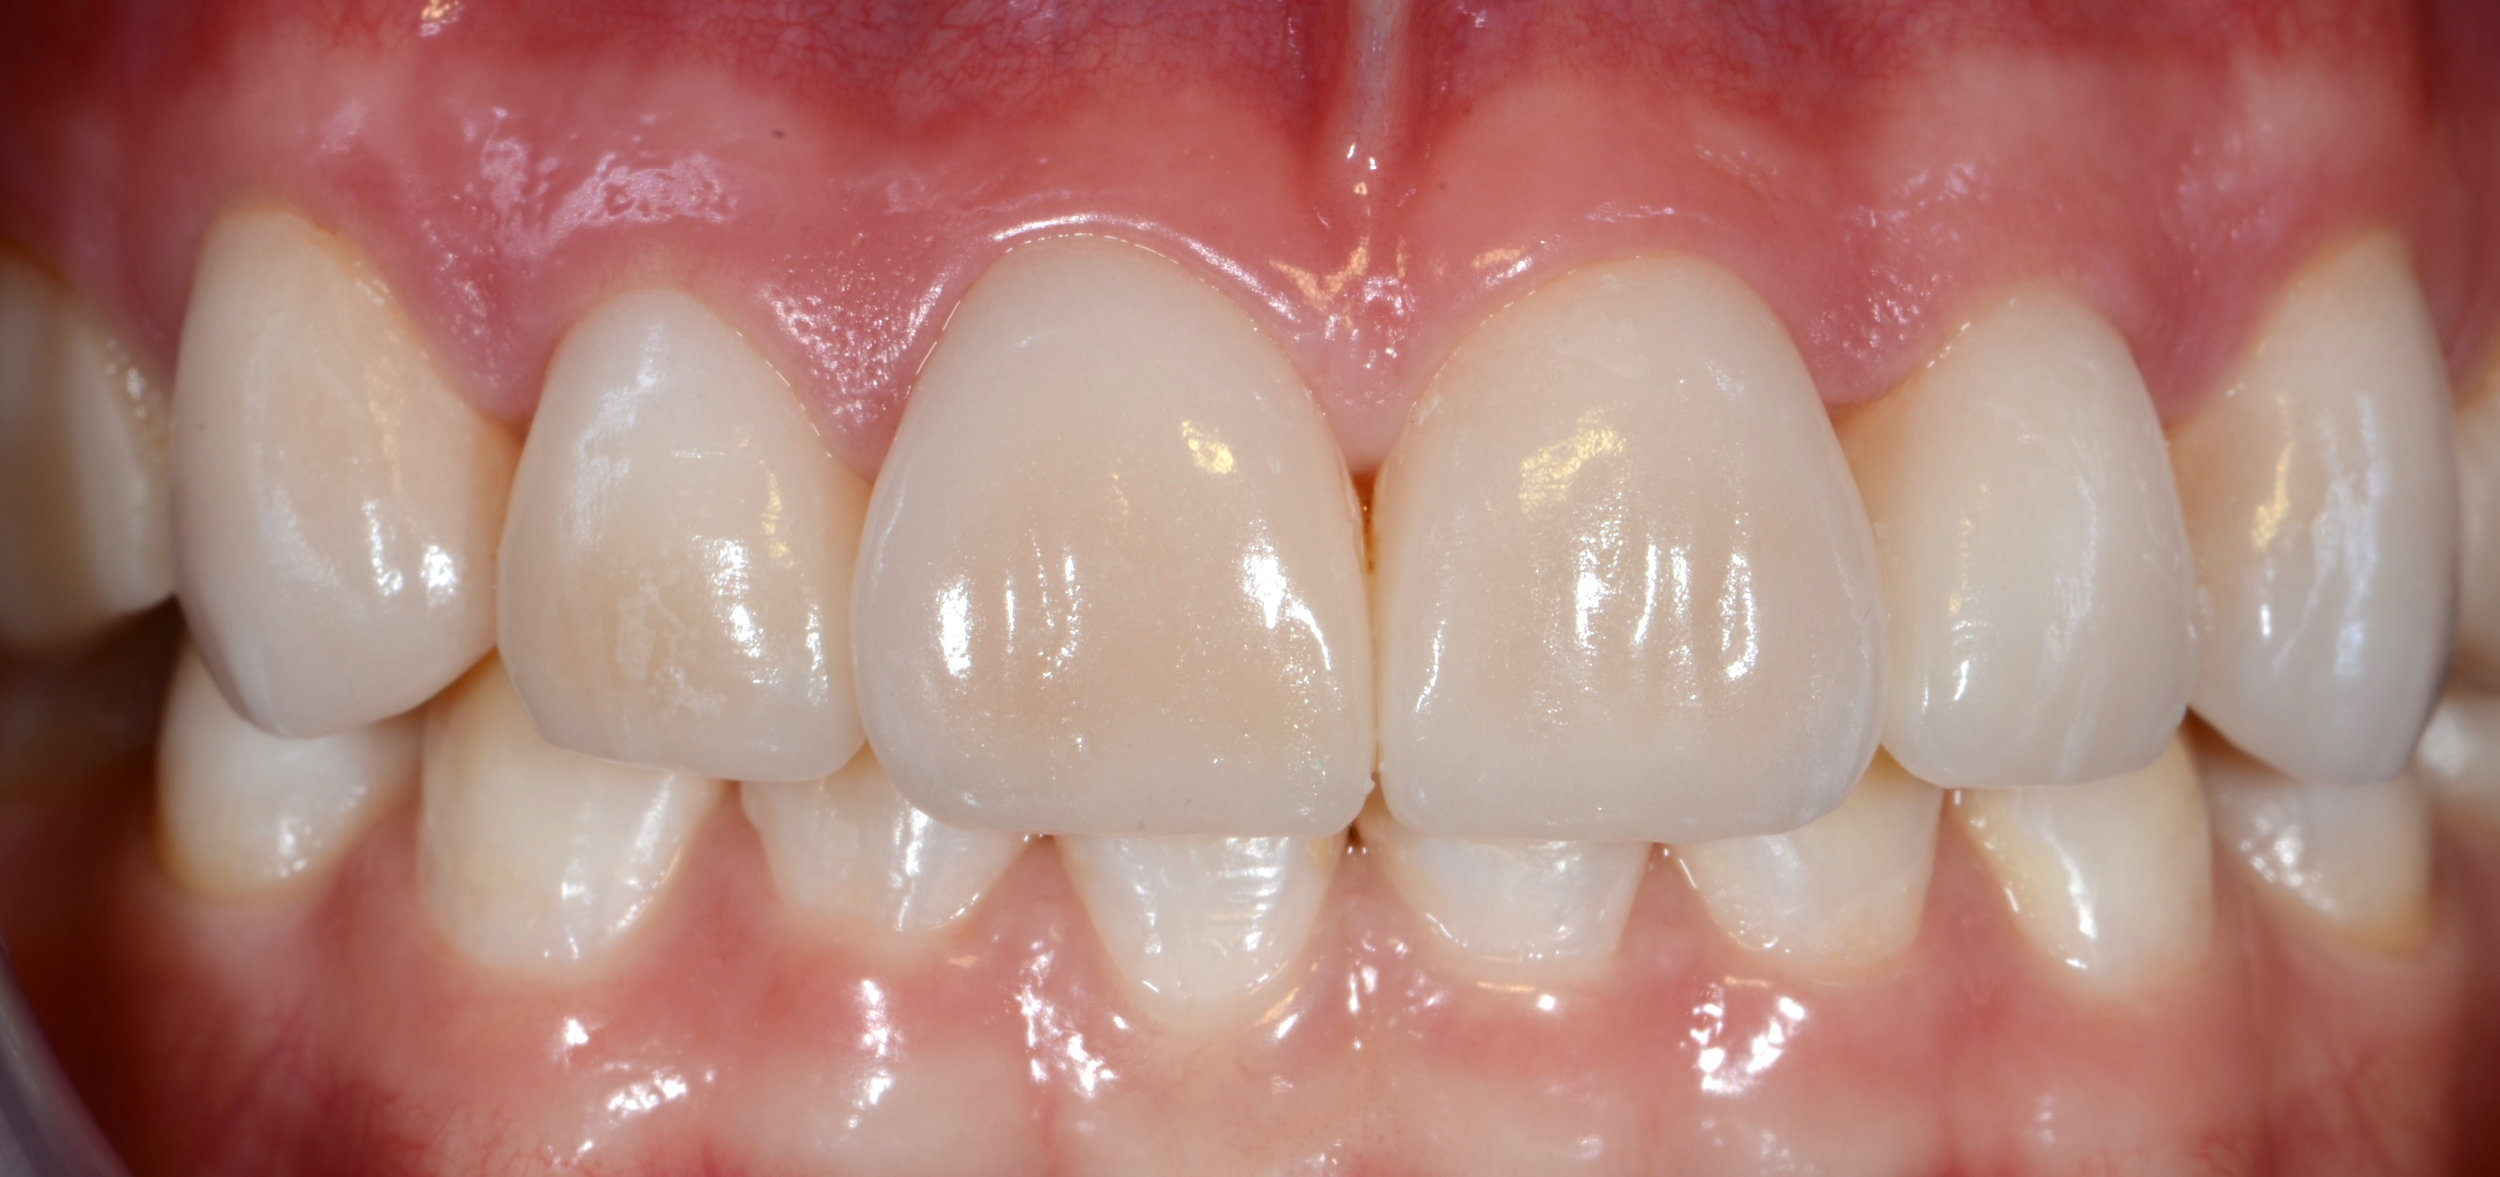 Porcelain Veneers - Porcelain veneers are thin shells of ceramic that bond directly to the front surfaces of the teeth. They have become increasingly popular due to their simplicity and versatility.